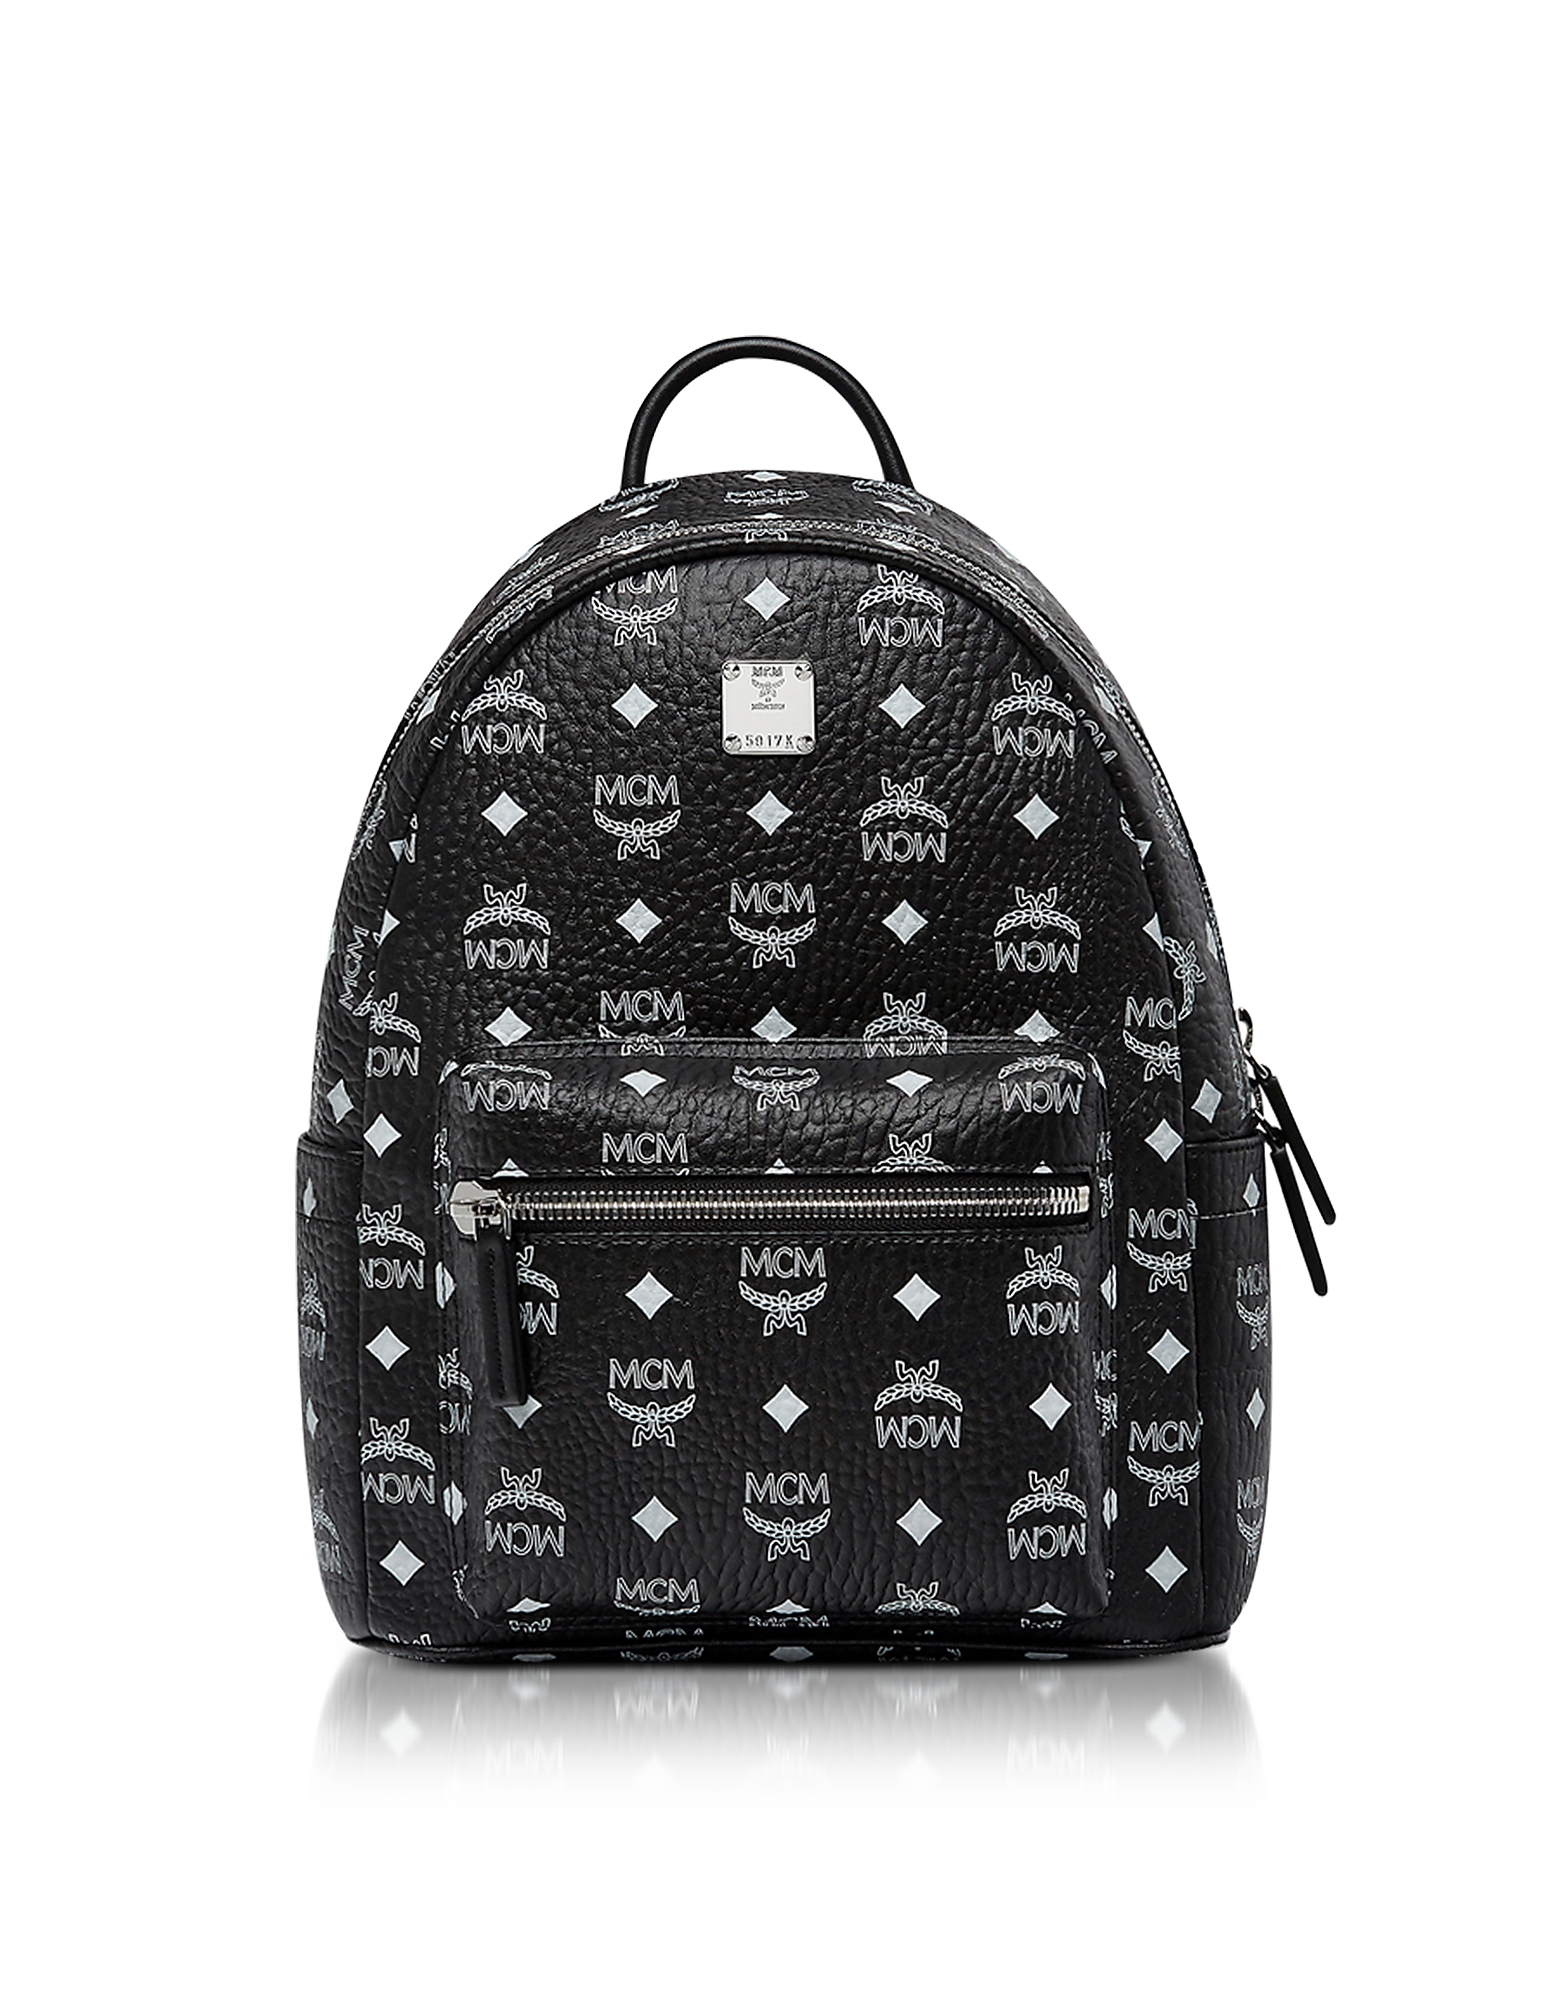 MCM Handbags, Small Black and White Logo Visetos Stark Backpack